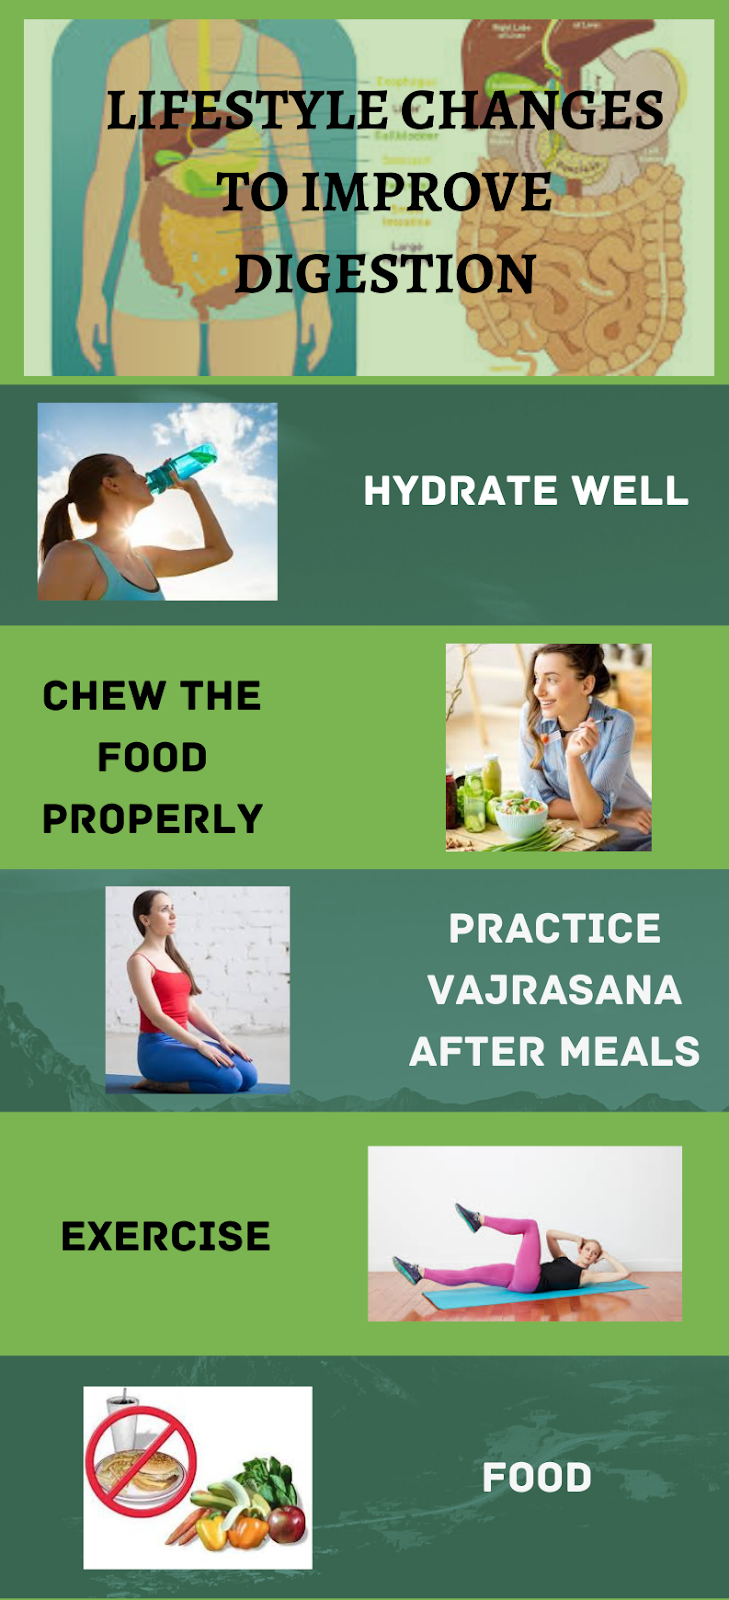 Lifestyle changes to improve digestion